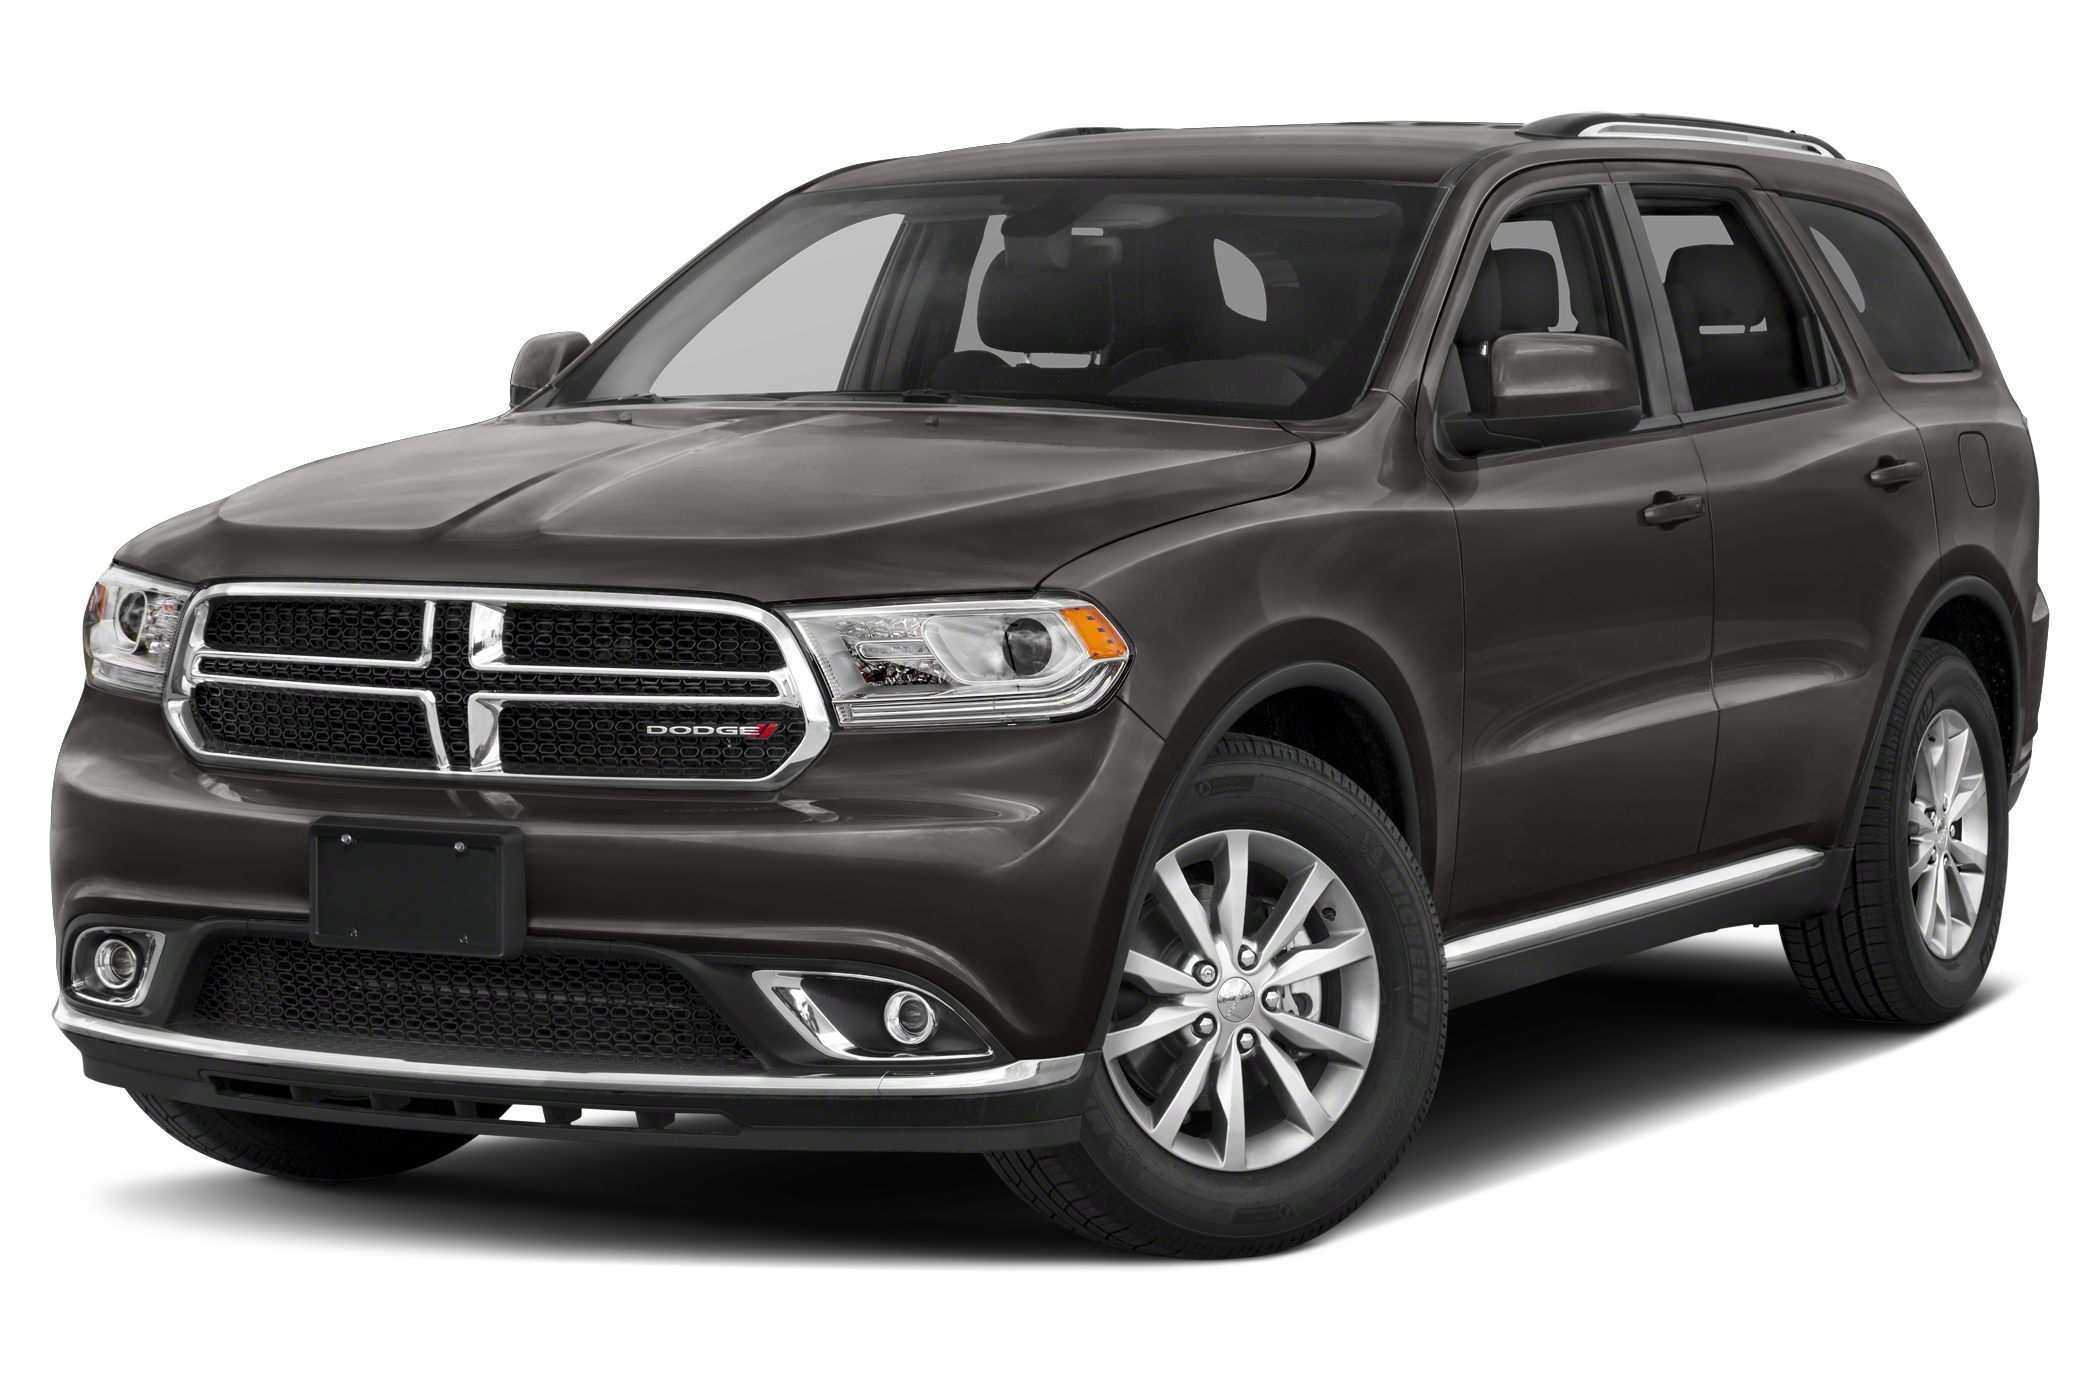 50 Best Review 2019 Dodge Durango Price Price for 2019 Dodge Durango Price